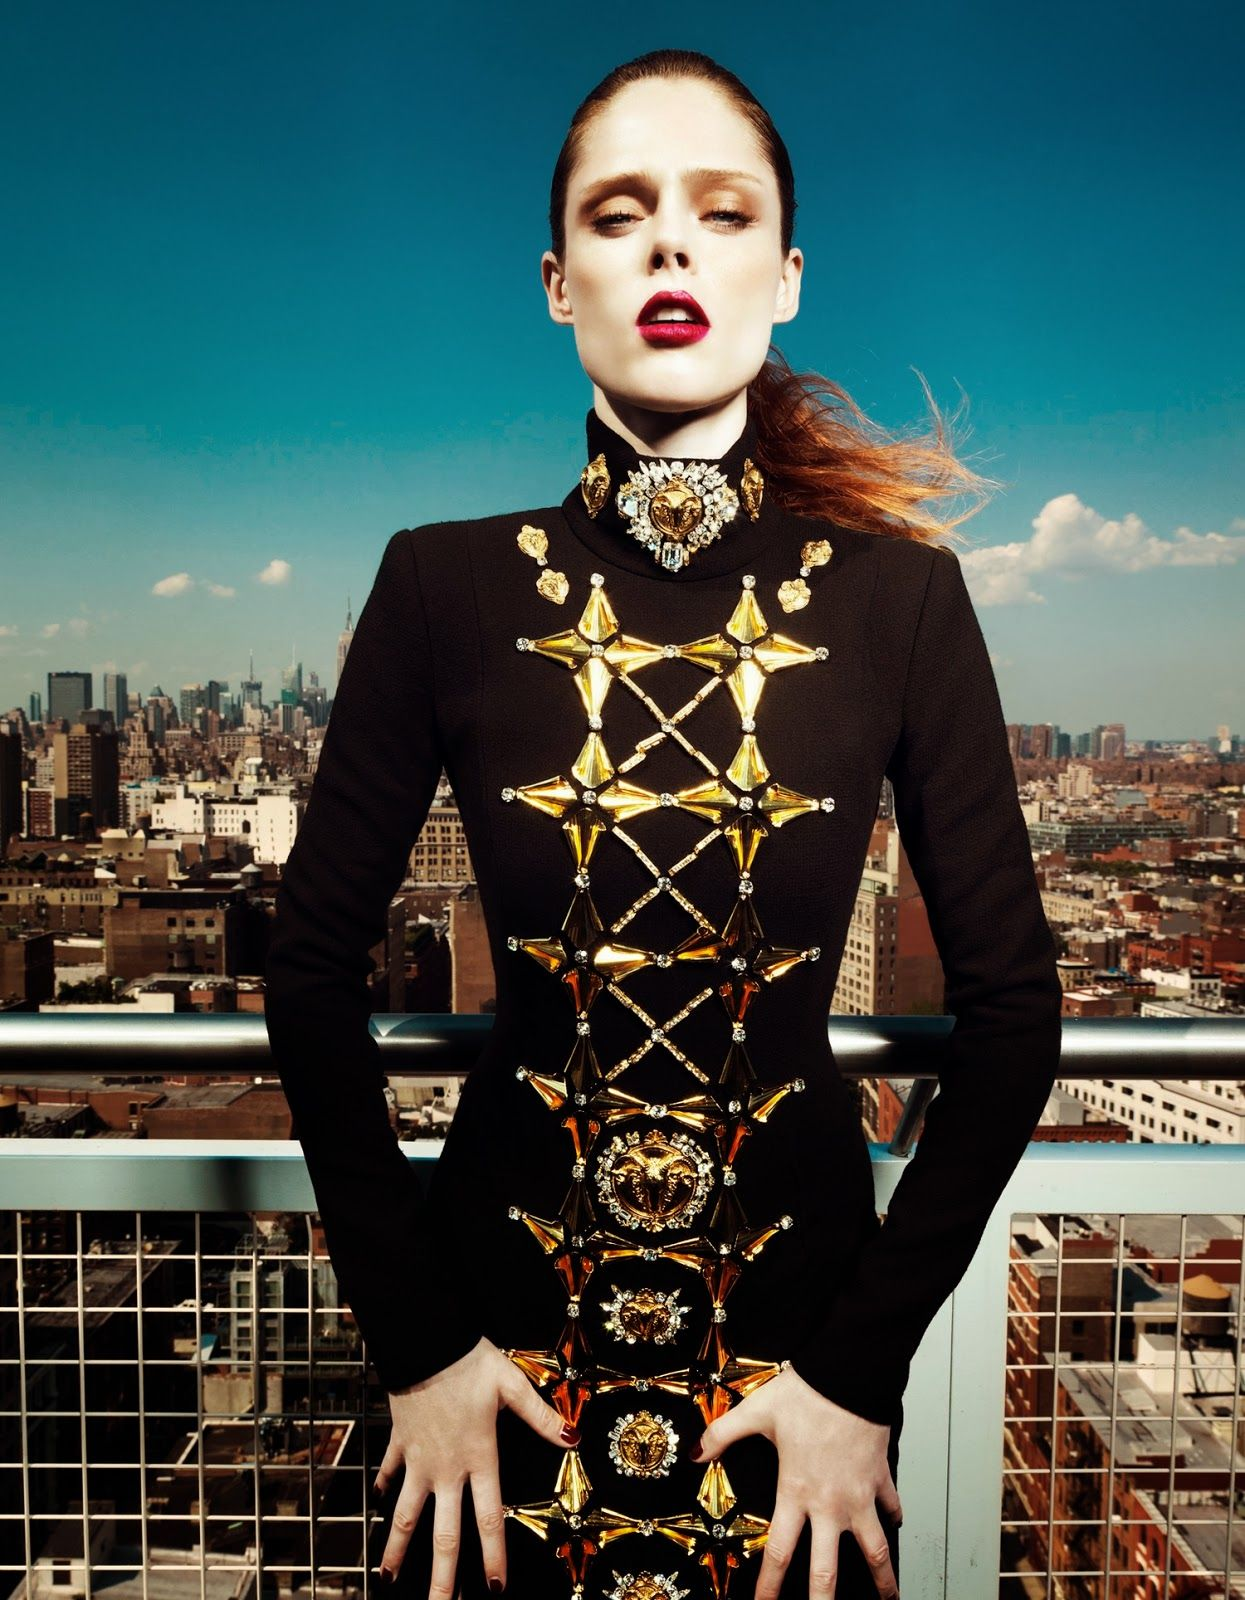 Photography style - visual optimism; fashion editorials, shows, campaigns & more!: up there: coco rocha by yin chao for harper's bazaar china september 2013